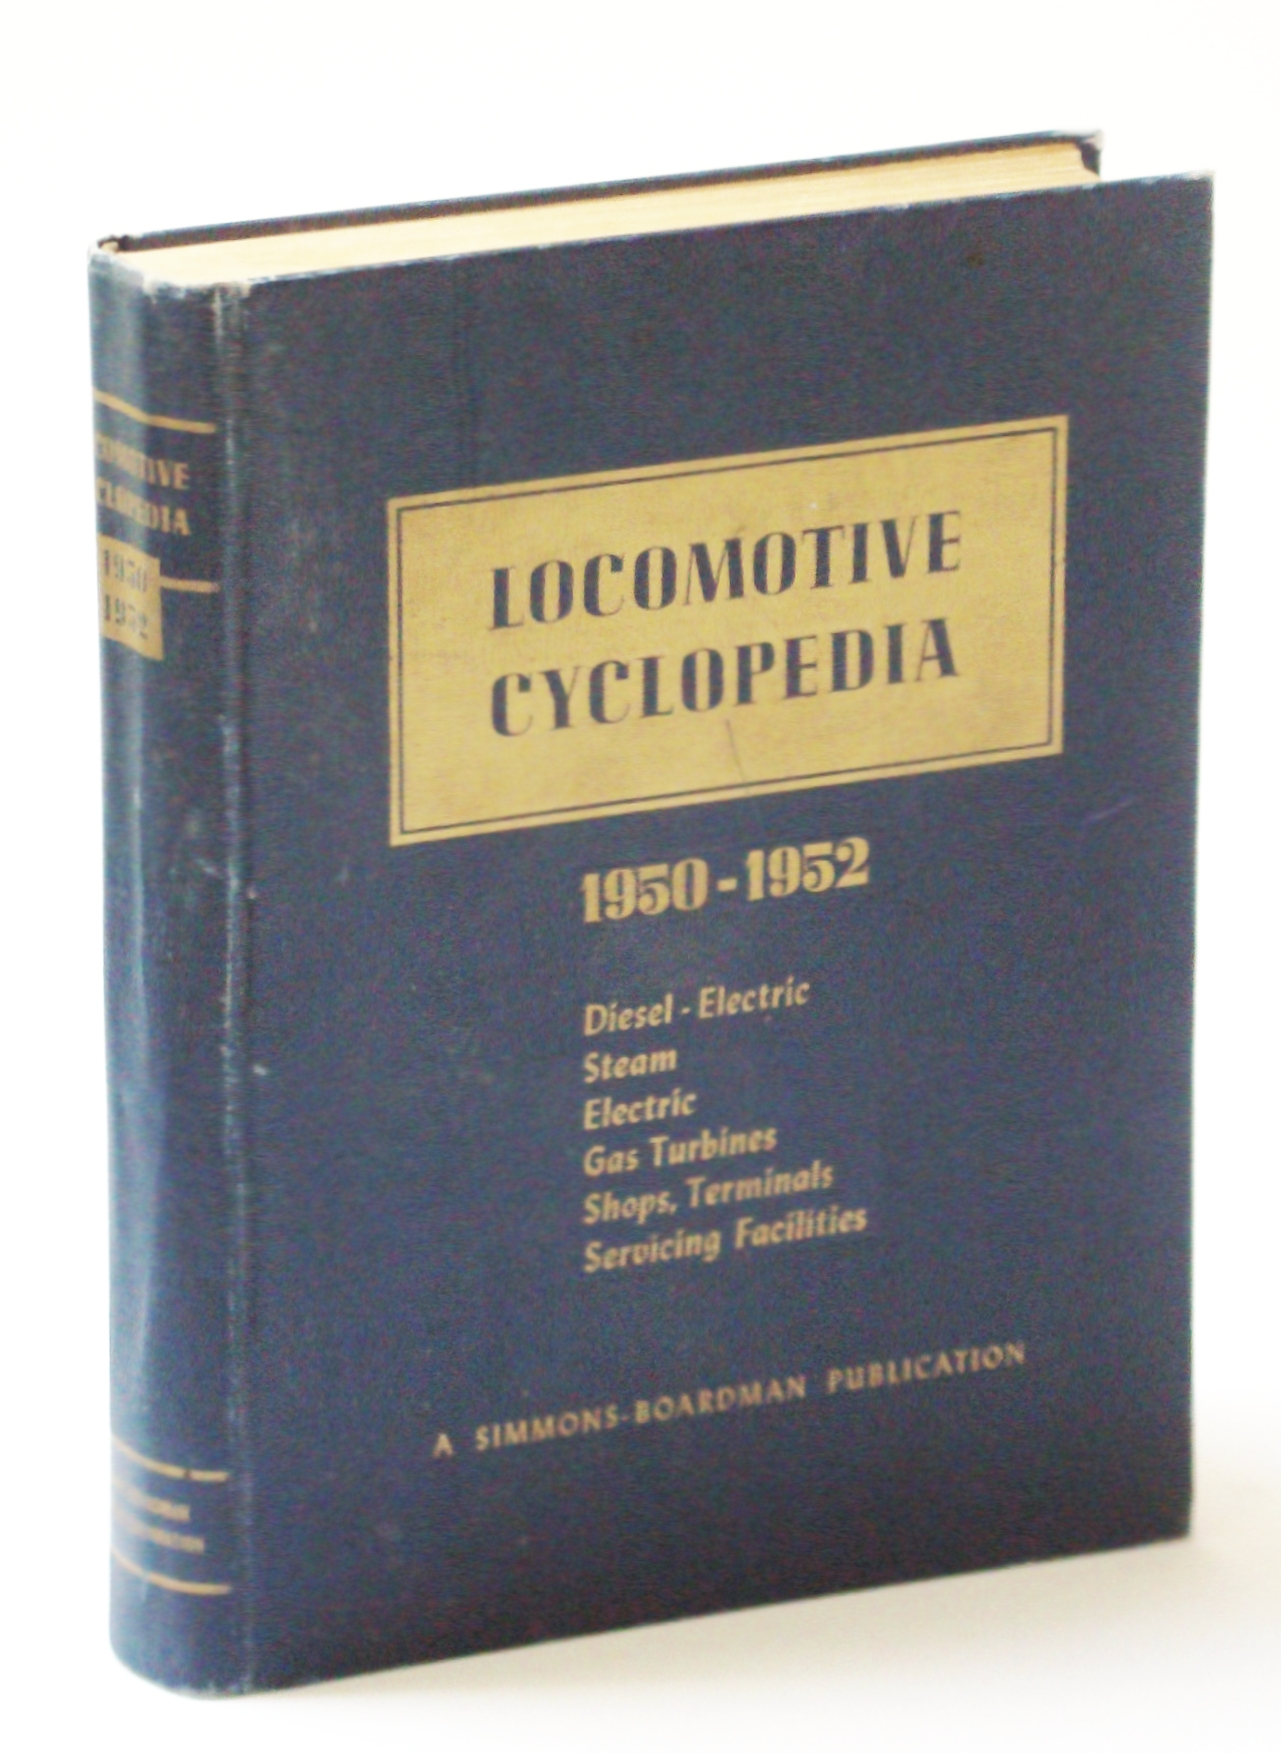 Image for Locomotive Cyclopedia of American Practice. Fourteenth edition 1950-52